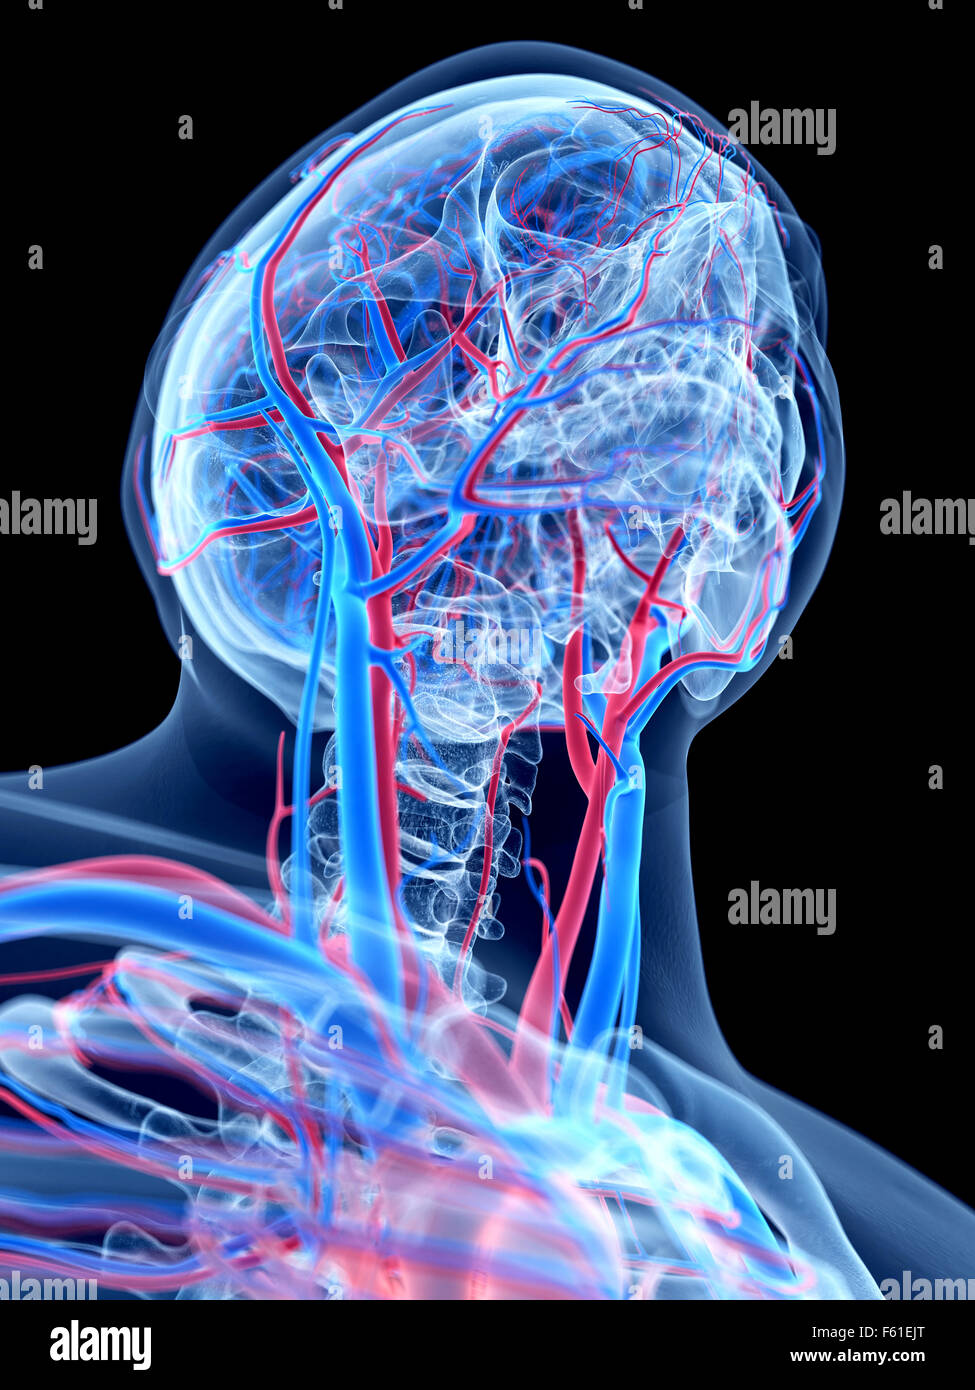 The Human Vascular System The Neck Stock Photo 89773232 Alamy